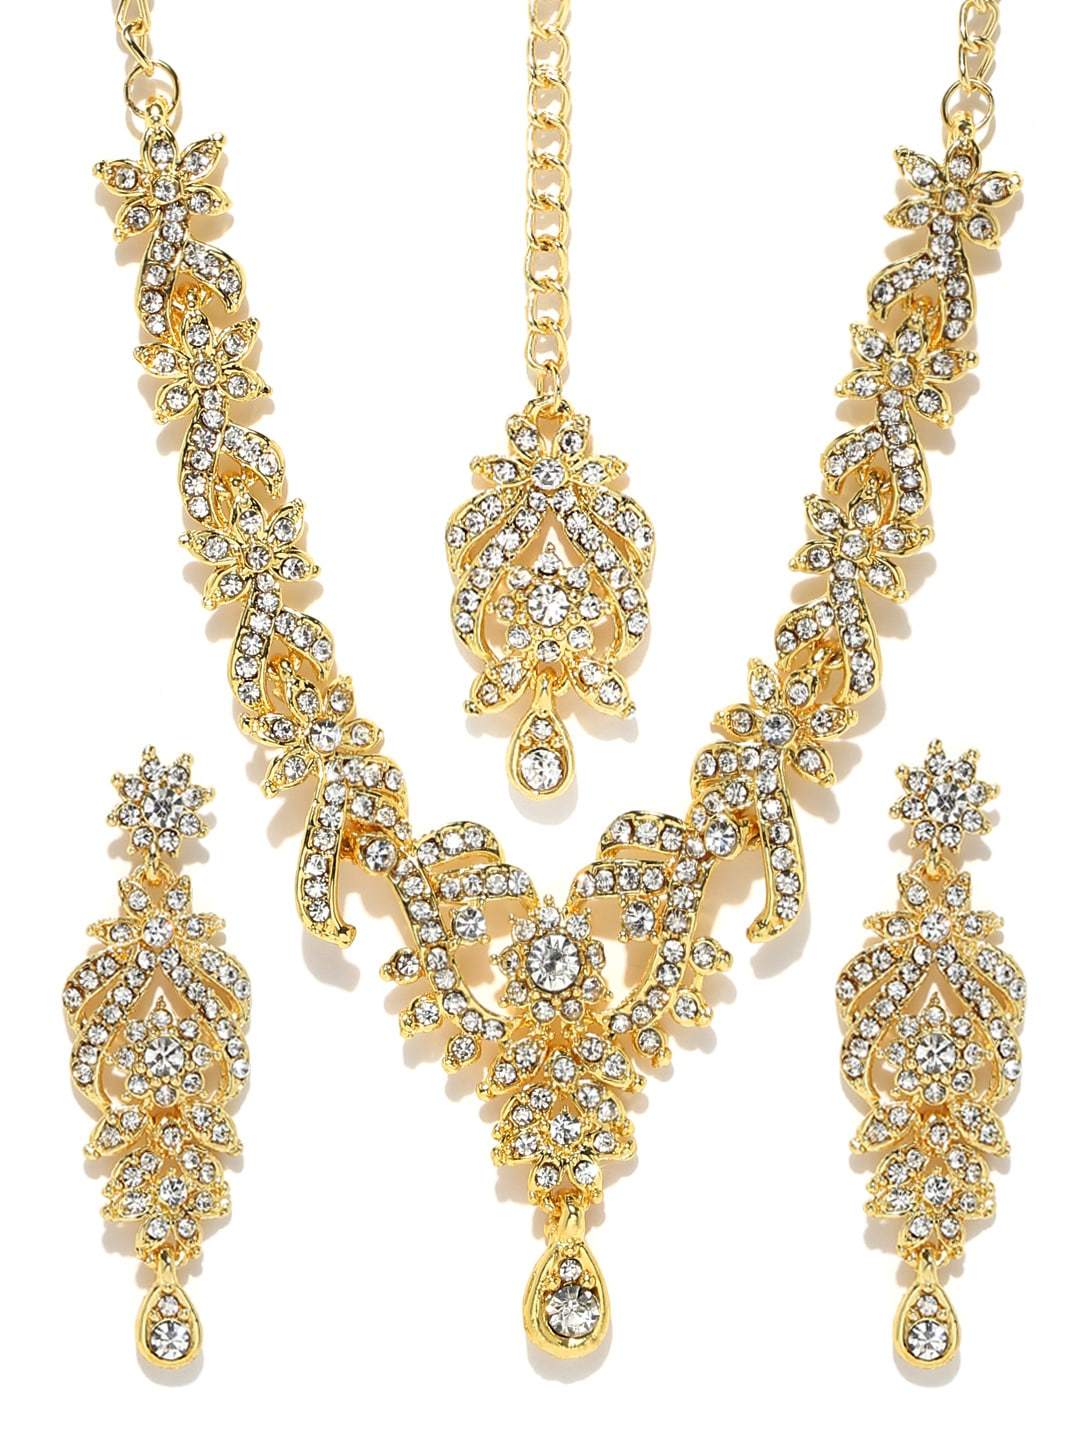 Sukkhi Silver-Toned Gold-Plated Jewellery Set